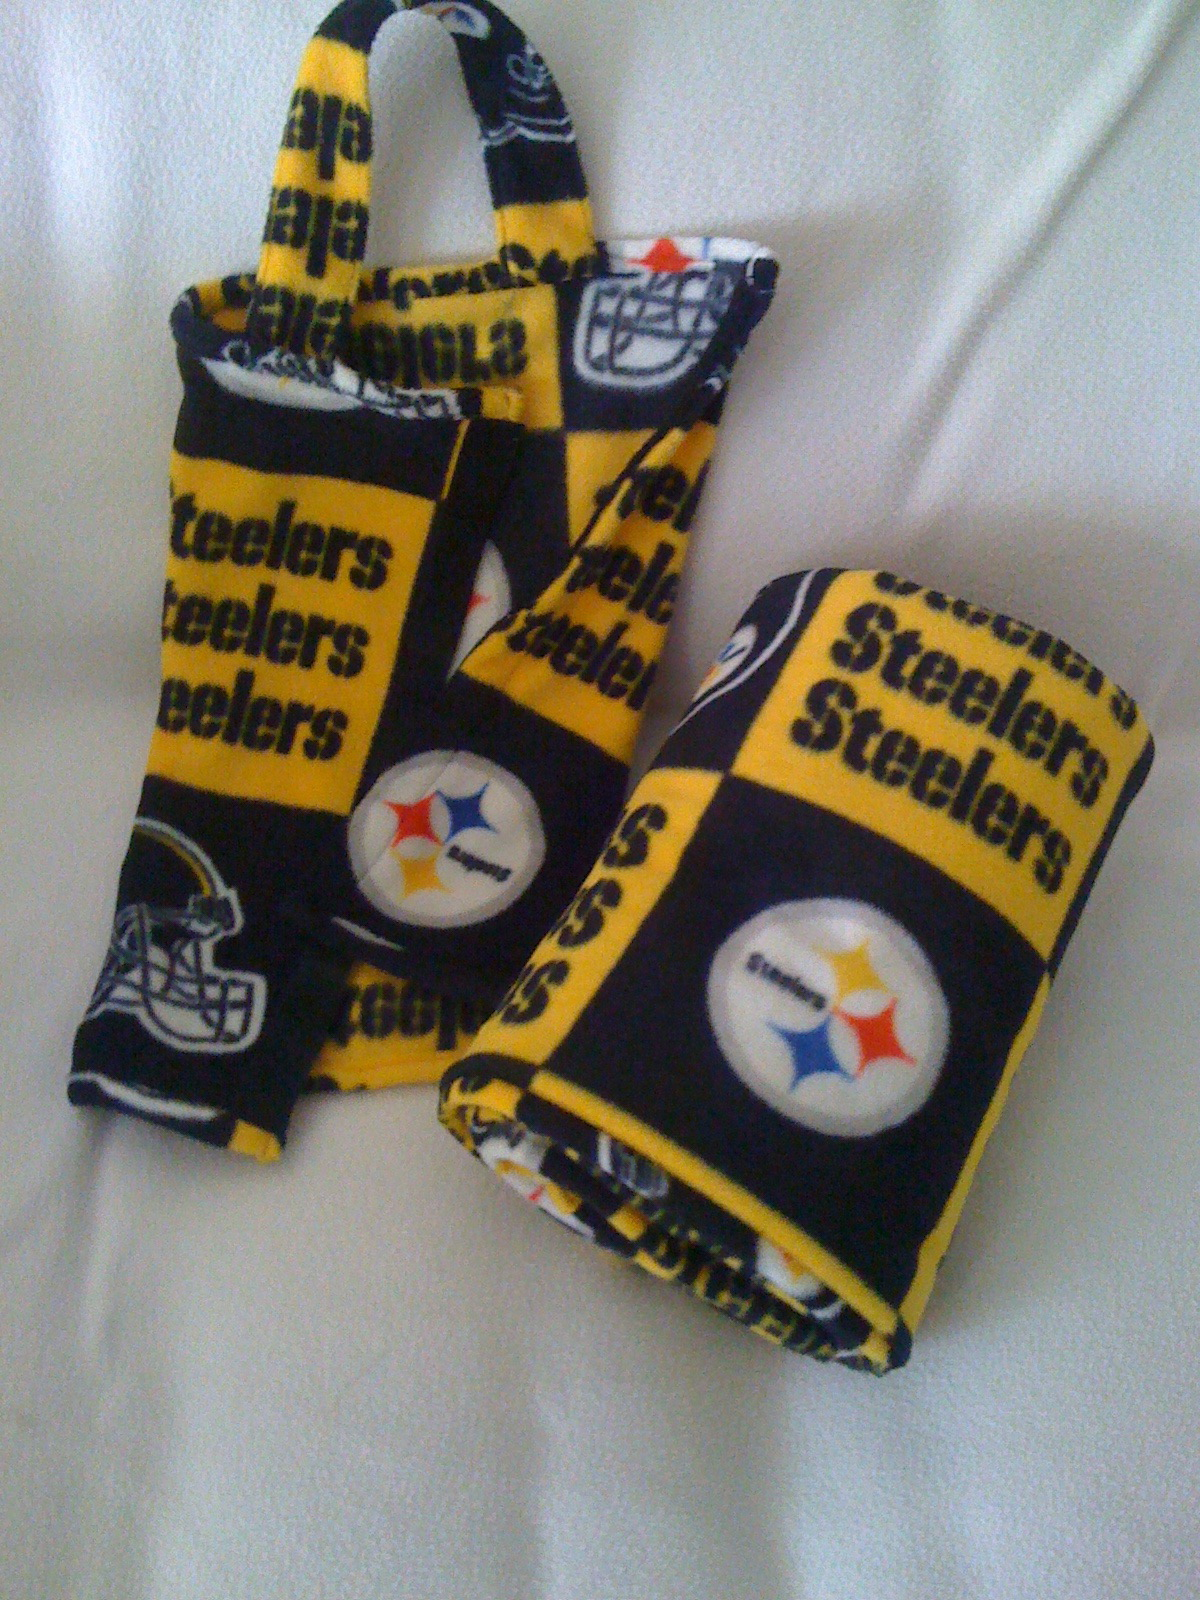 Blanket-In-A-Bag, NFL Pittsburg Steelers